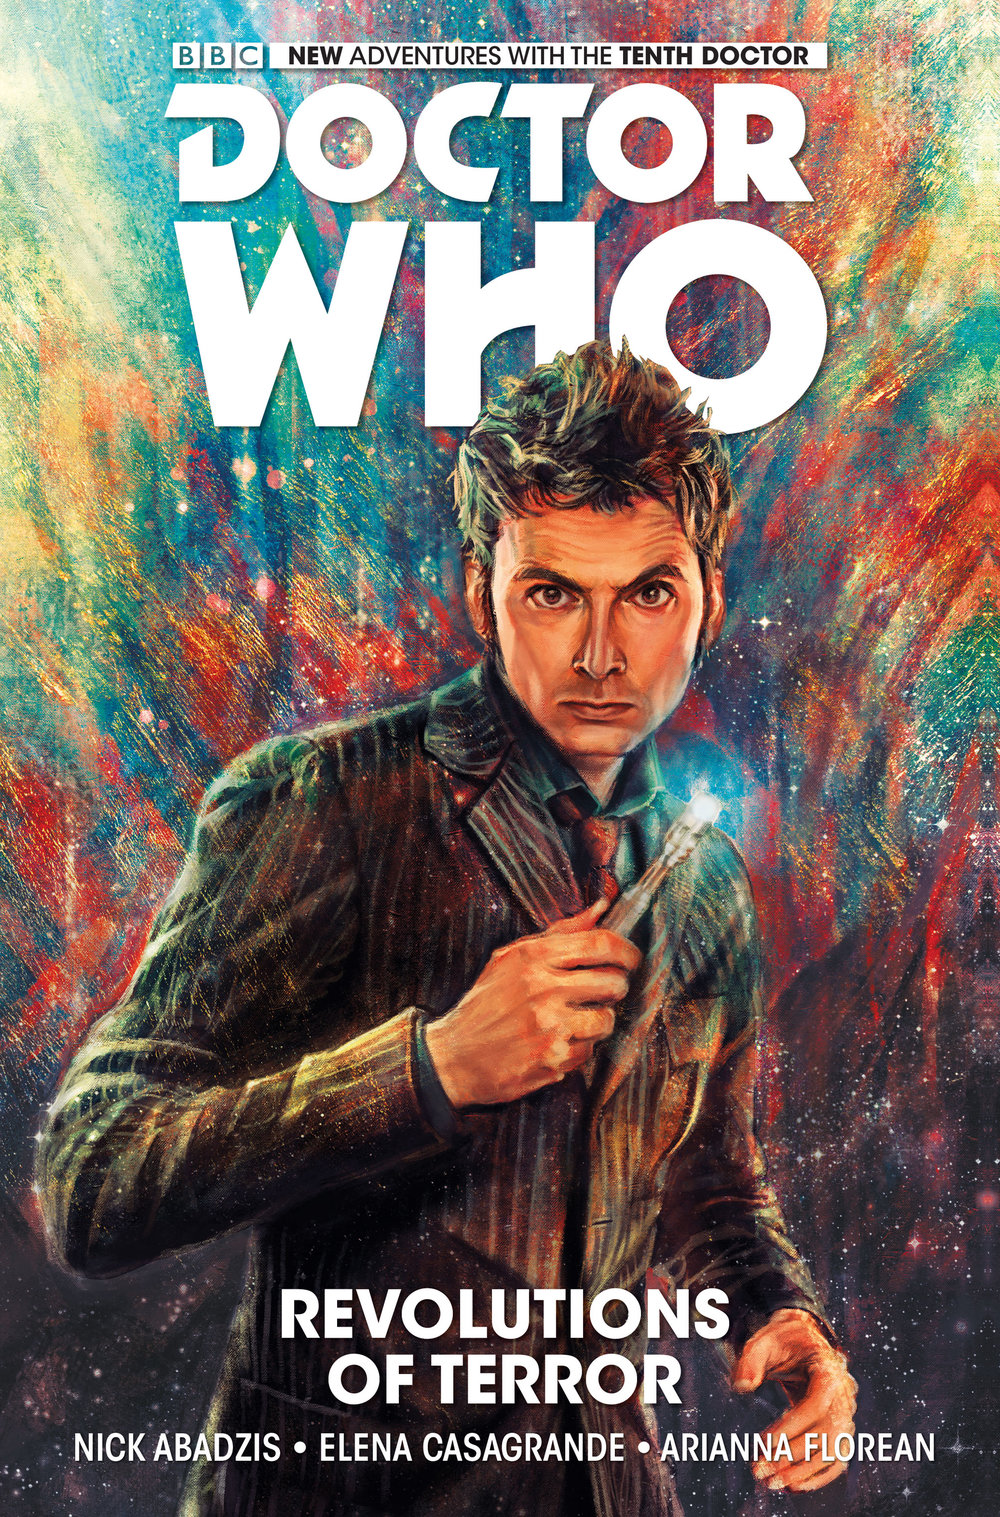 Doctor Who Volume 1 - Revolutions of Terror